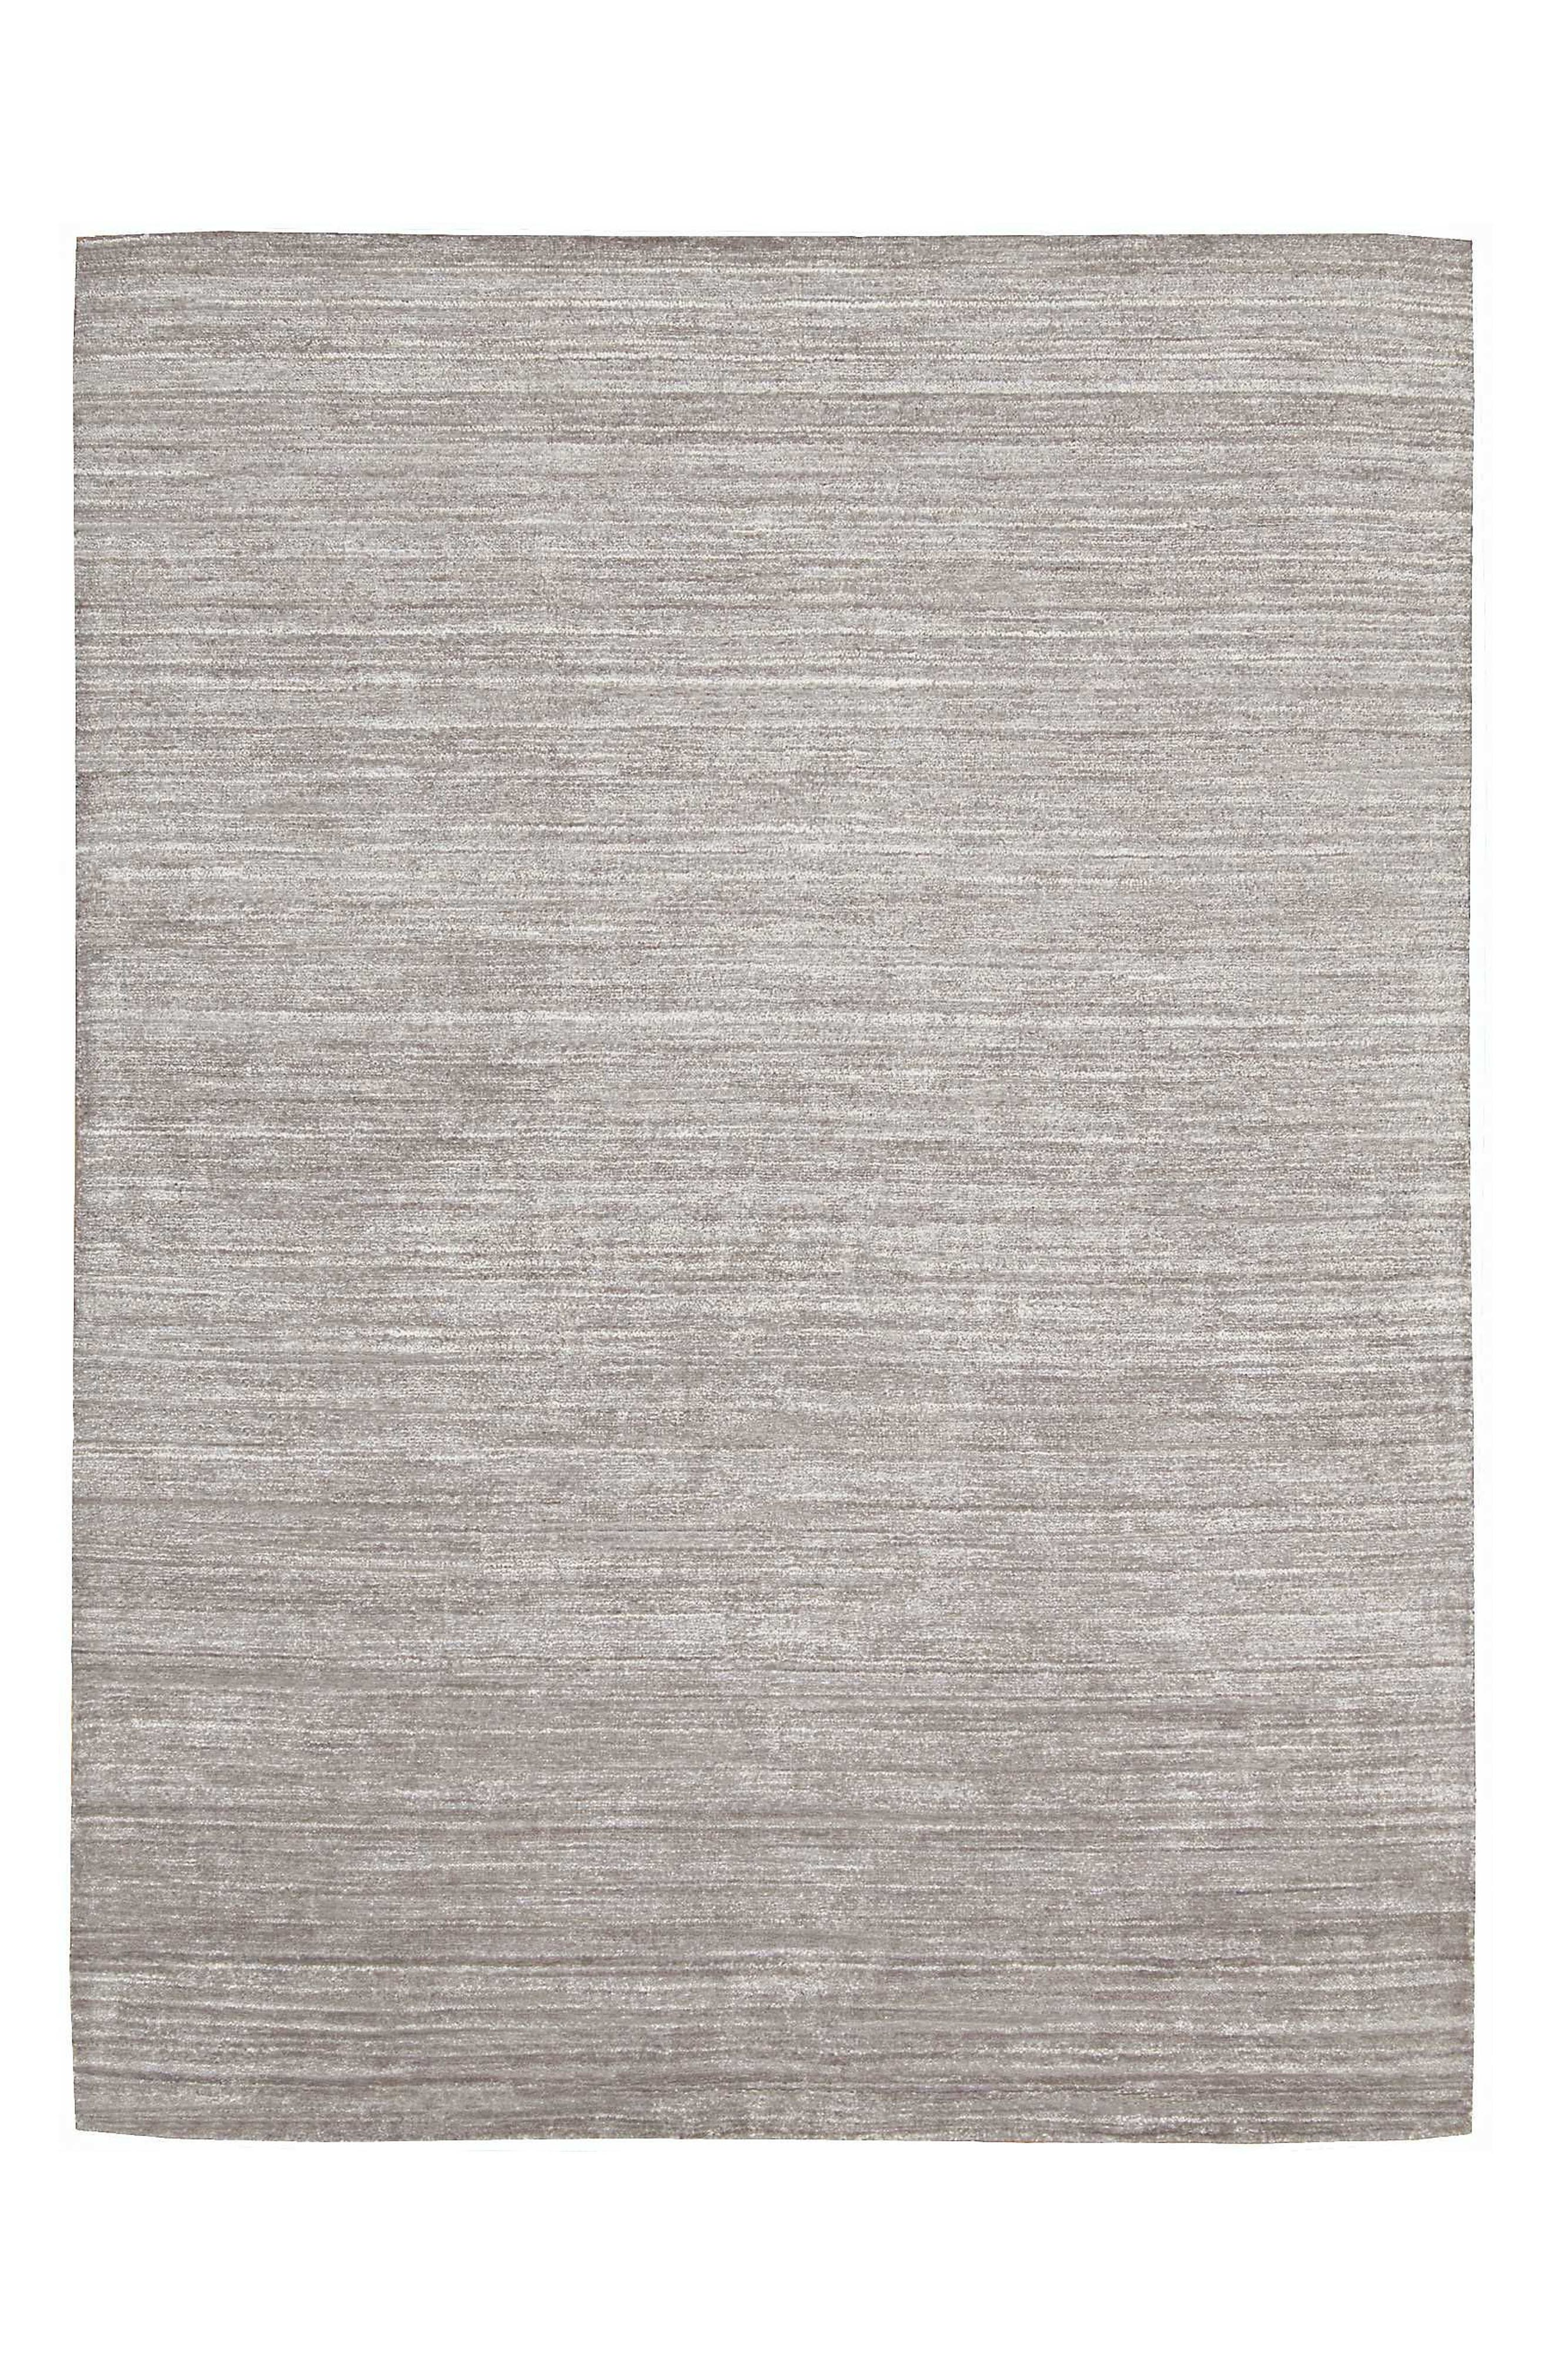 Home Shimmer Mineral Area Rug,                         Main,                         color, Silver